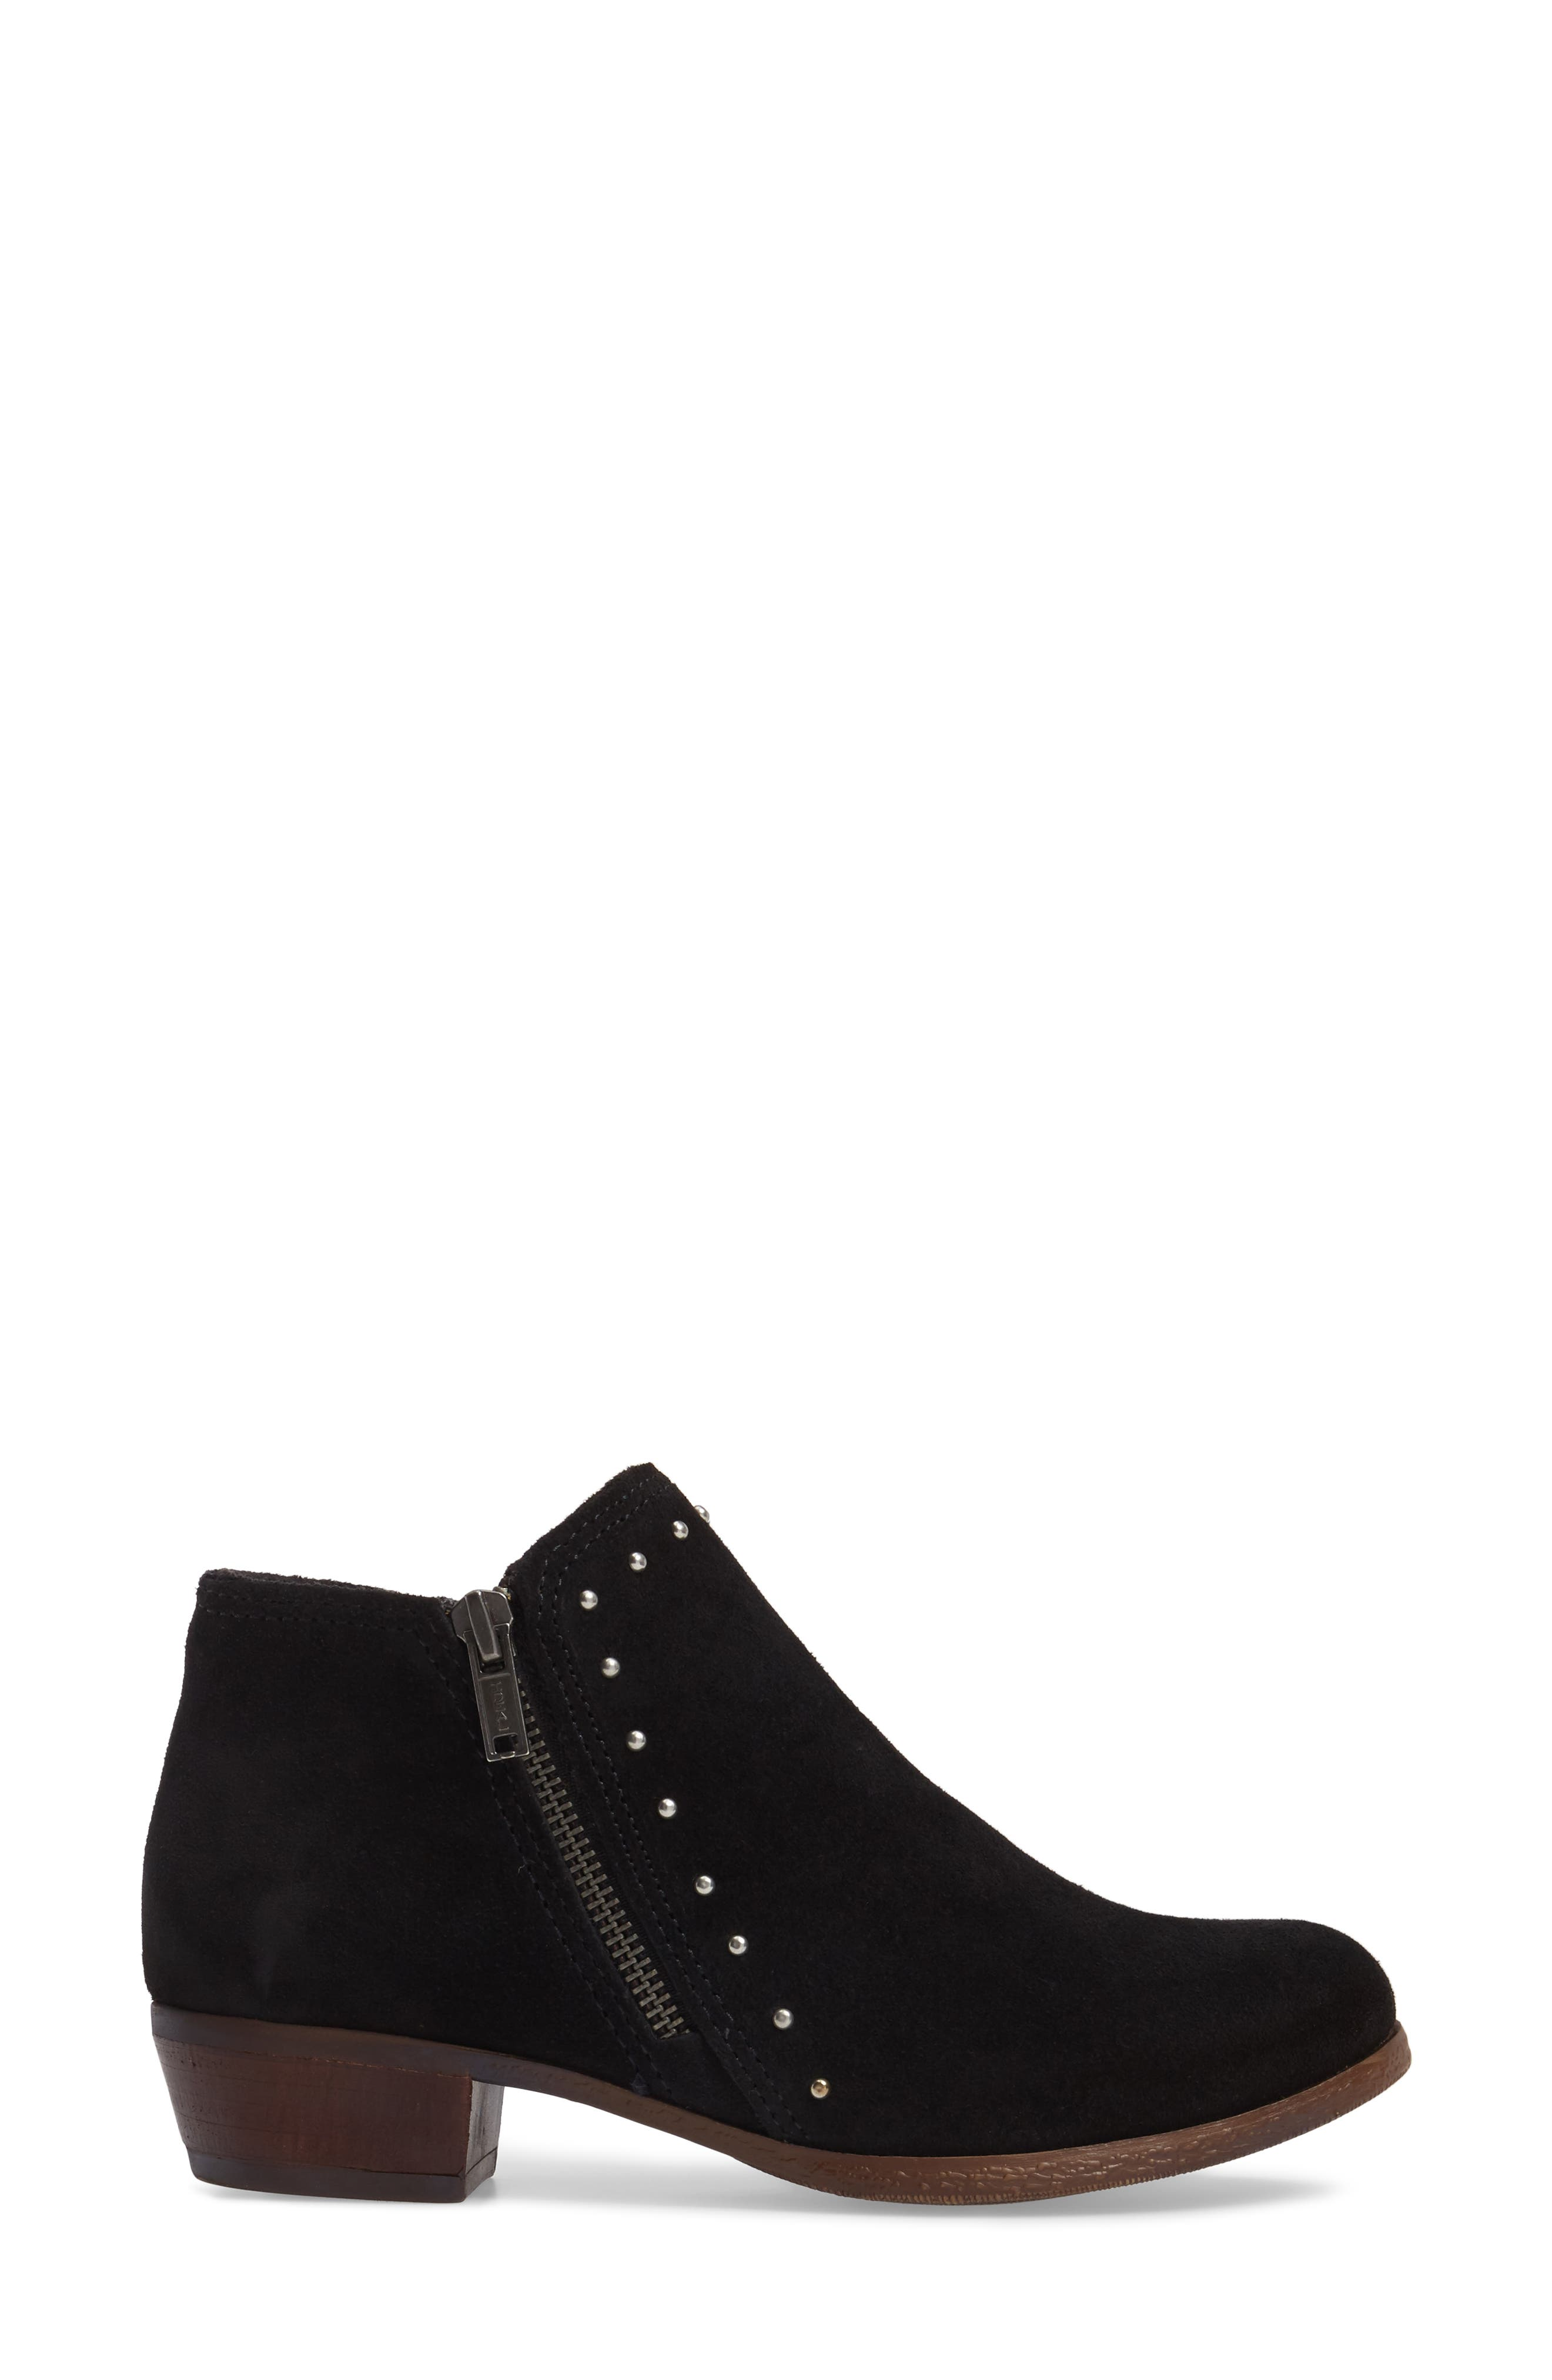 Brie Studded Bootie,                             Alternate thumbnail 3, color,                             BLACK